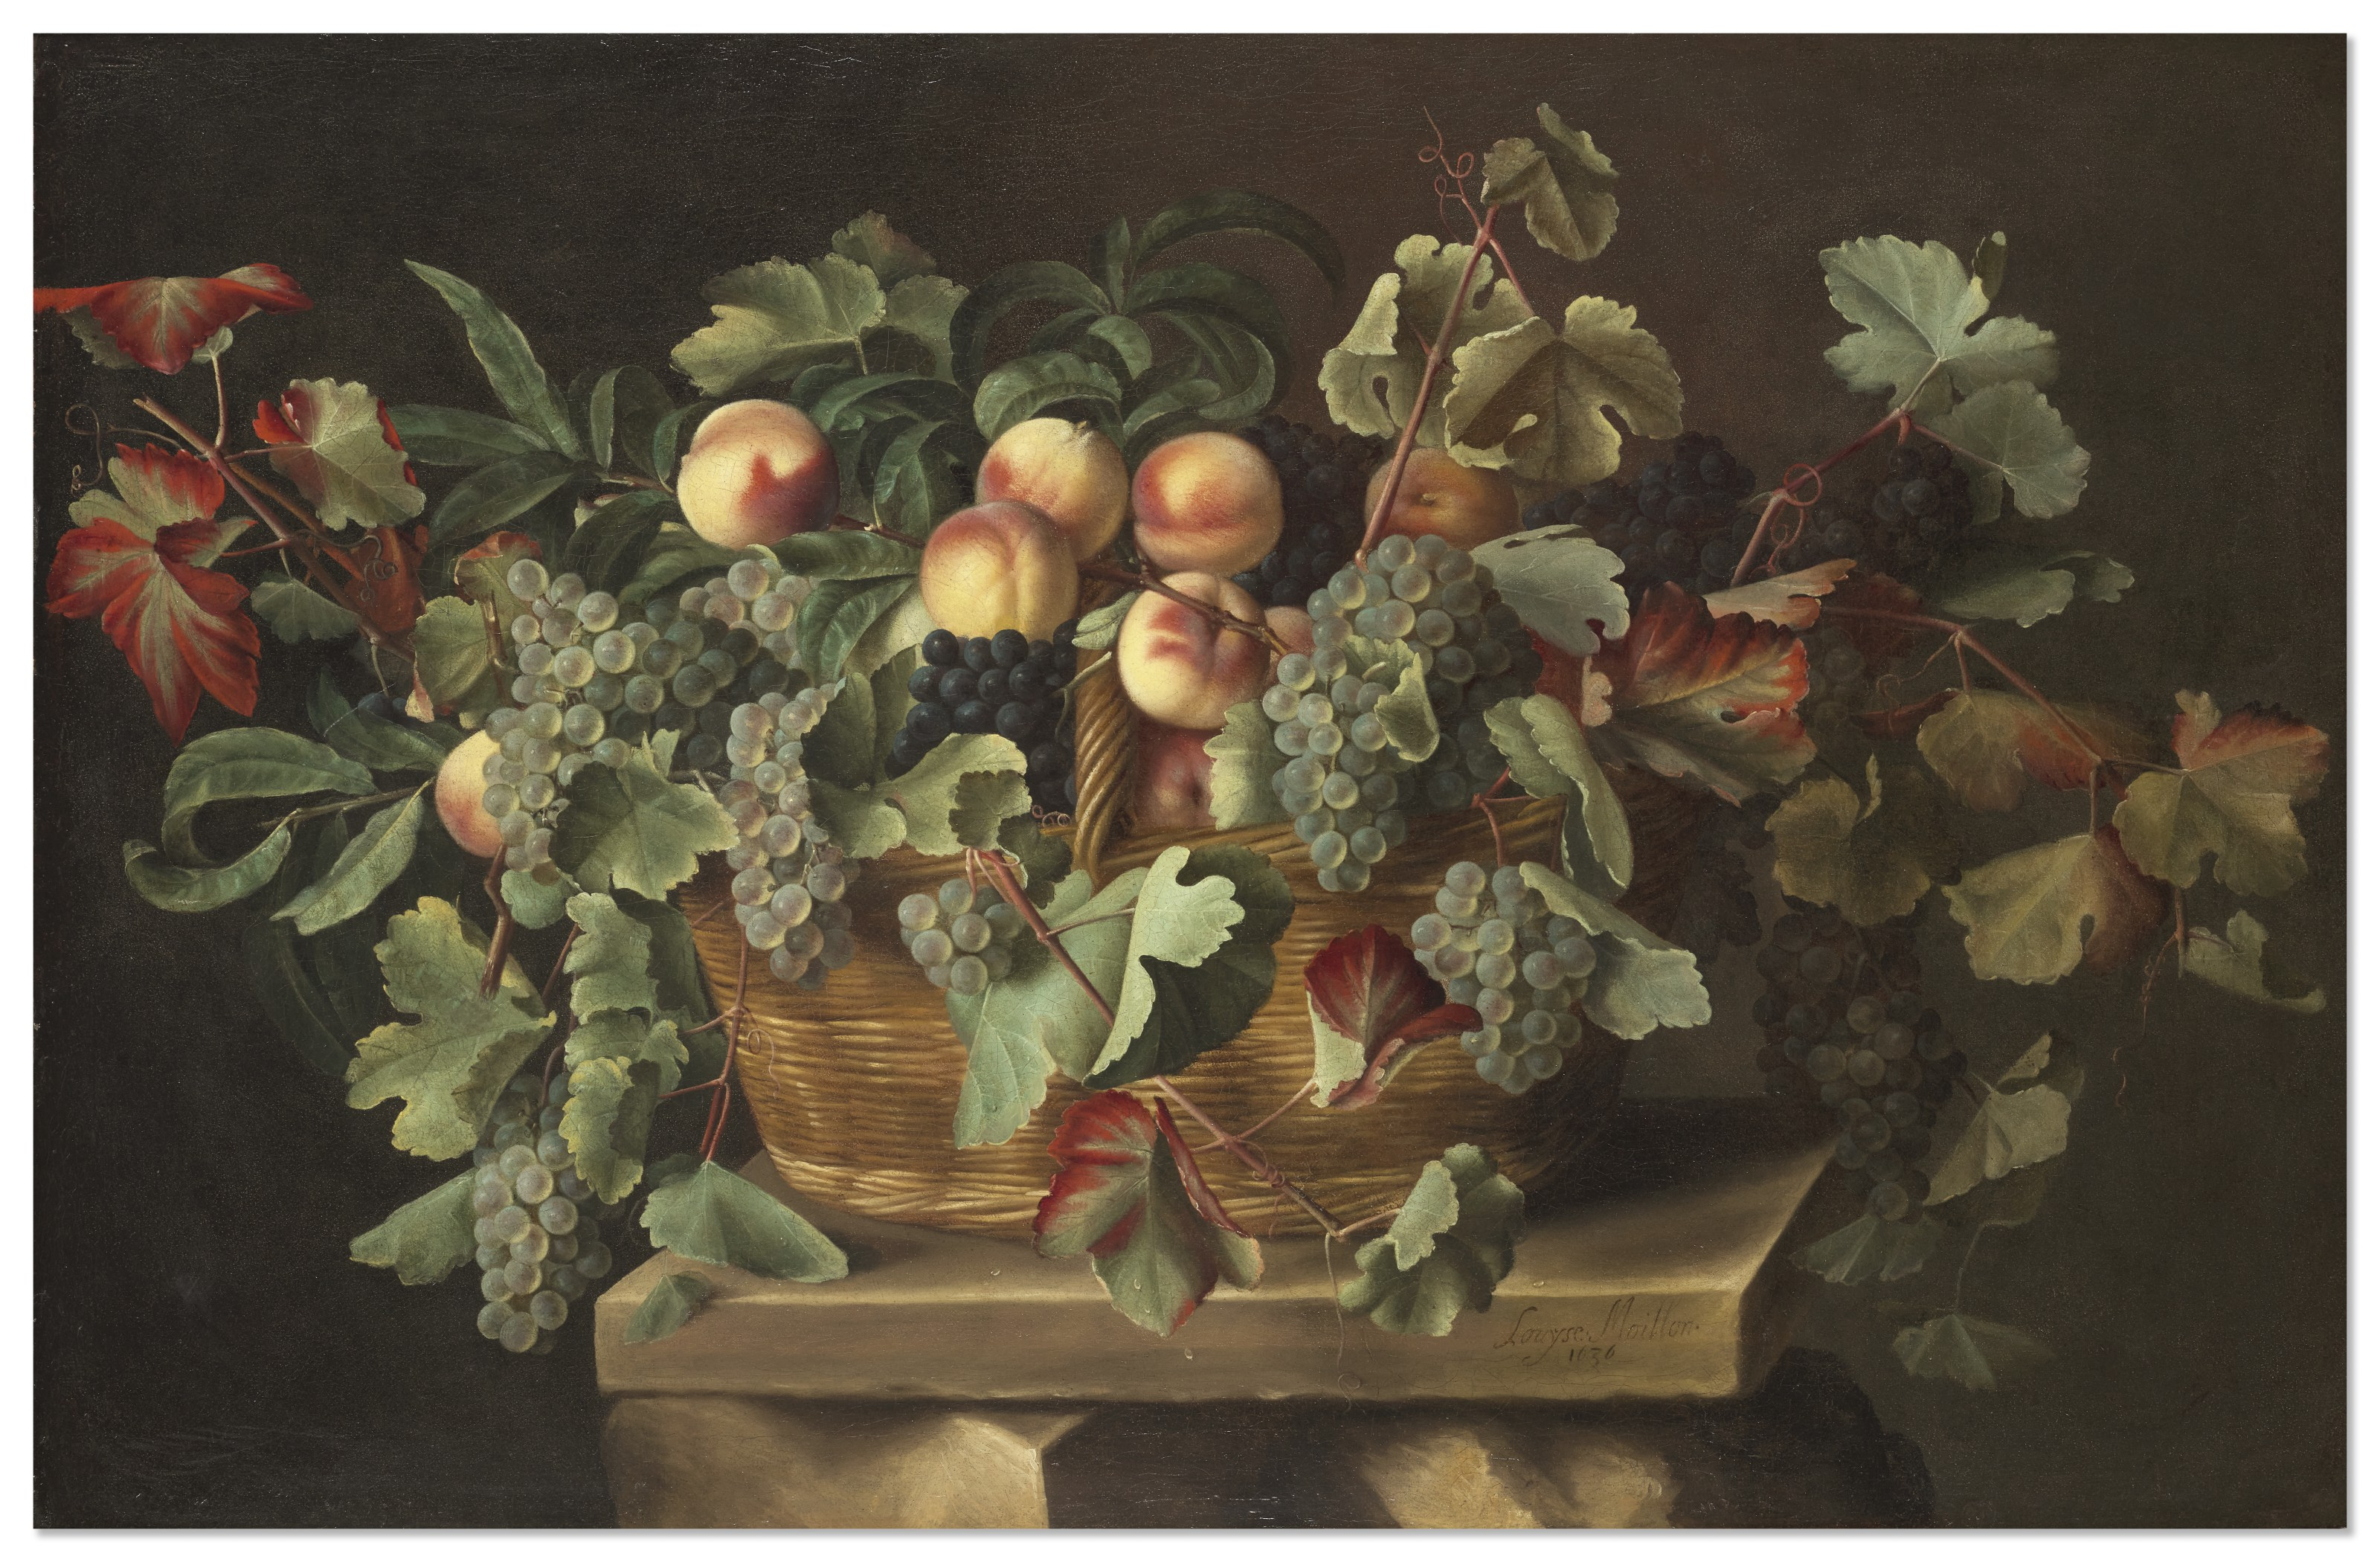 Louyse Moillon (1610–1696), Still life with peaches and grapes, 1636. Oil on canvas. 26 x 39 116  in (66 x 99.5  cm). Estimate €300,000-500,000. Offered in Women in Art on 16 June 2021 at Christie's in Paris